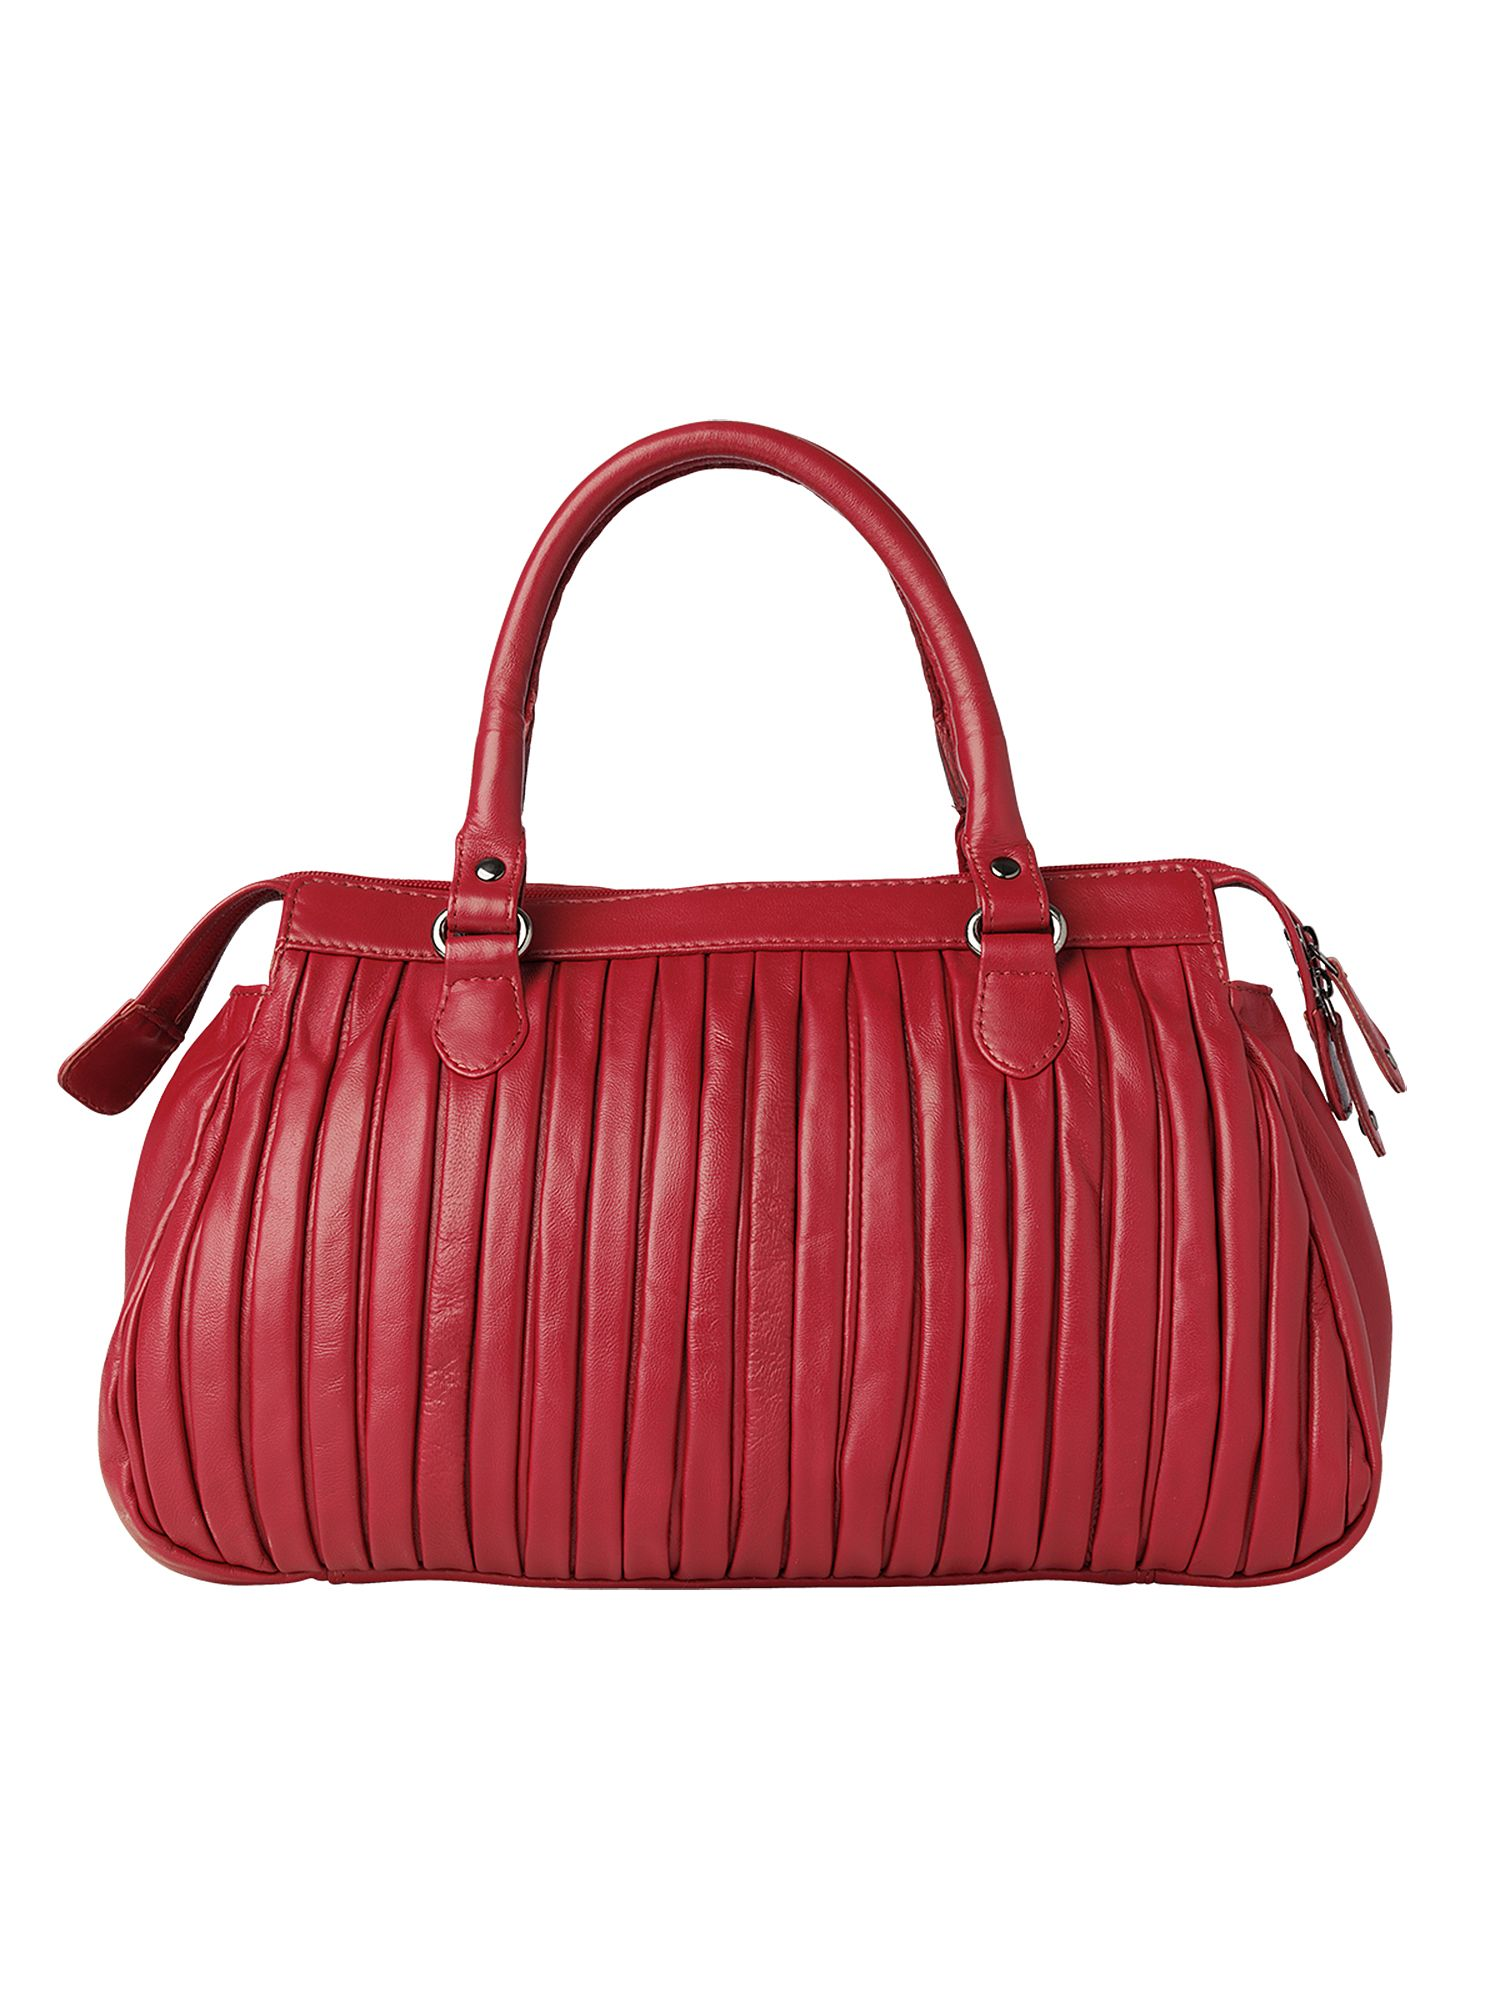 Phase Eight Kensington hand bag Crimson product image